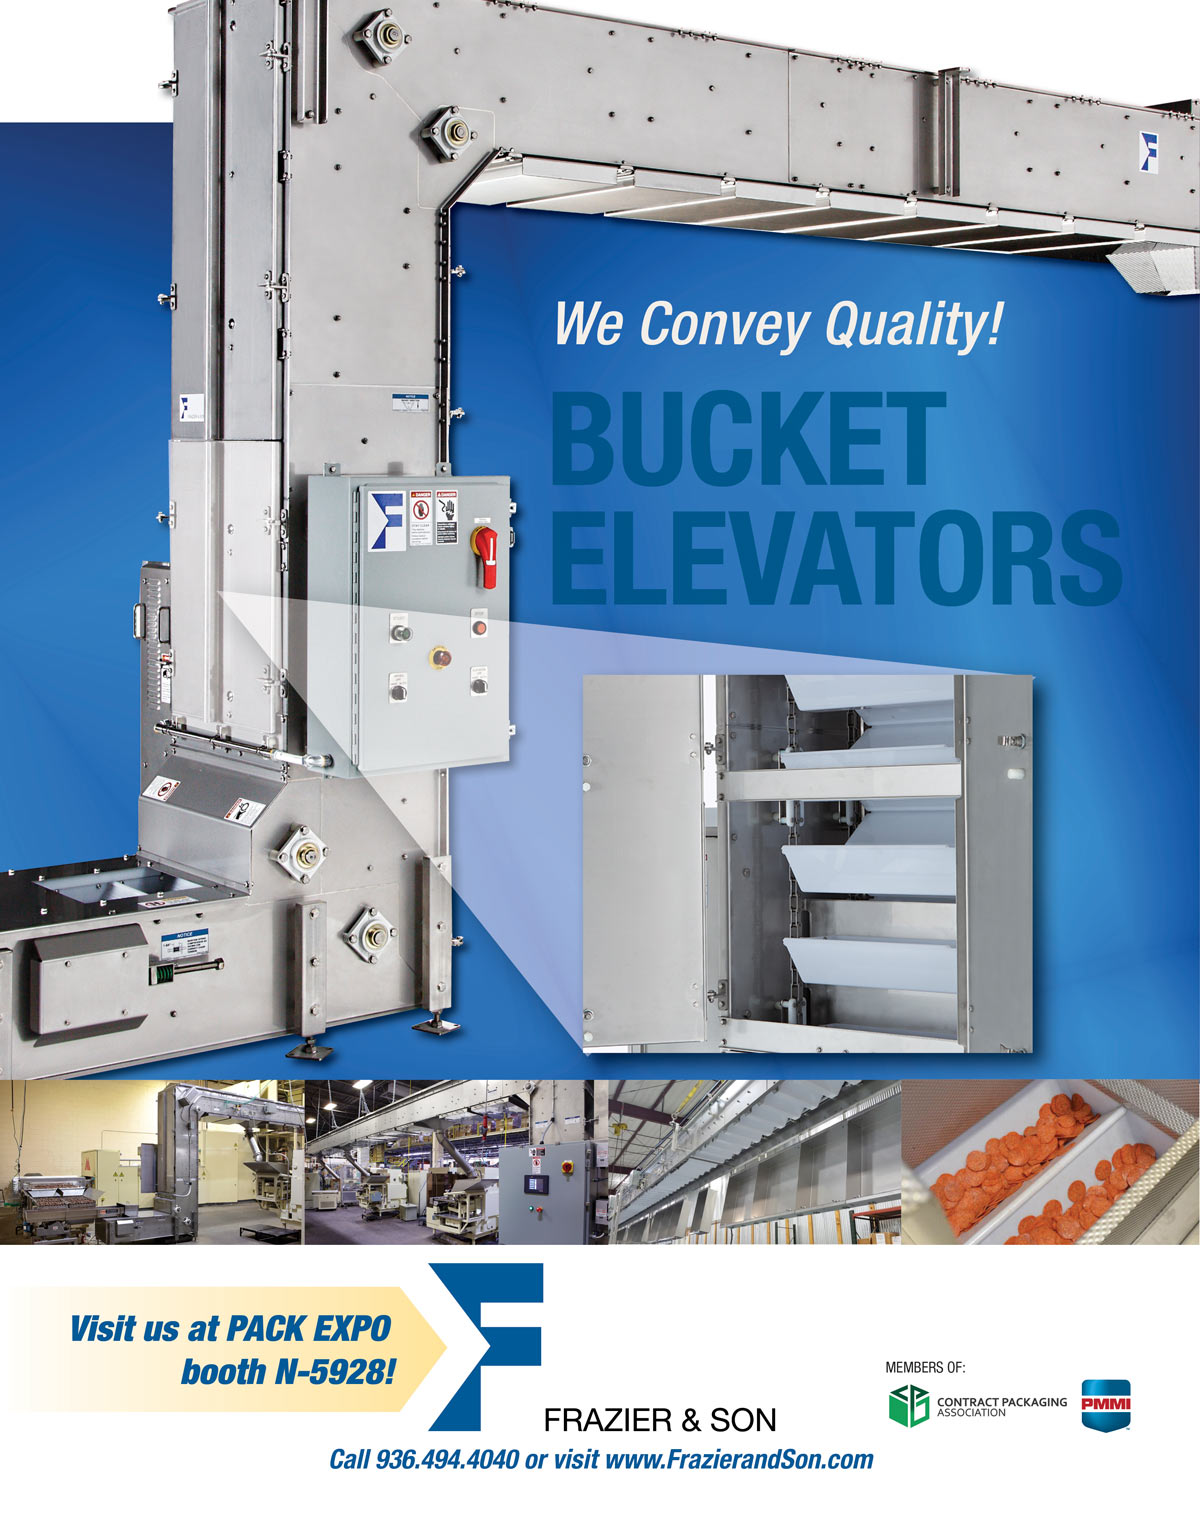 Make plans today to visit Frazier & Son Bucket Elevators at Pack Expo at Booth N-5928!